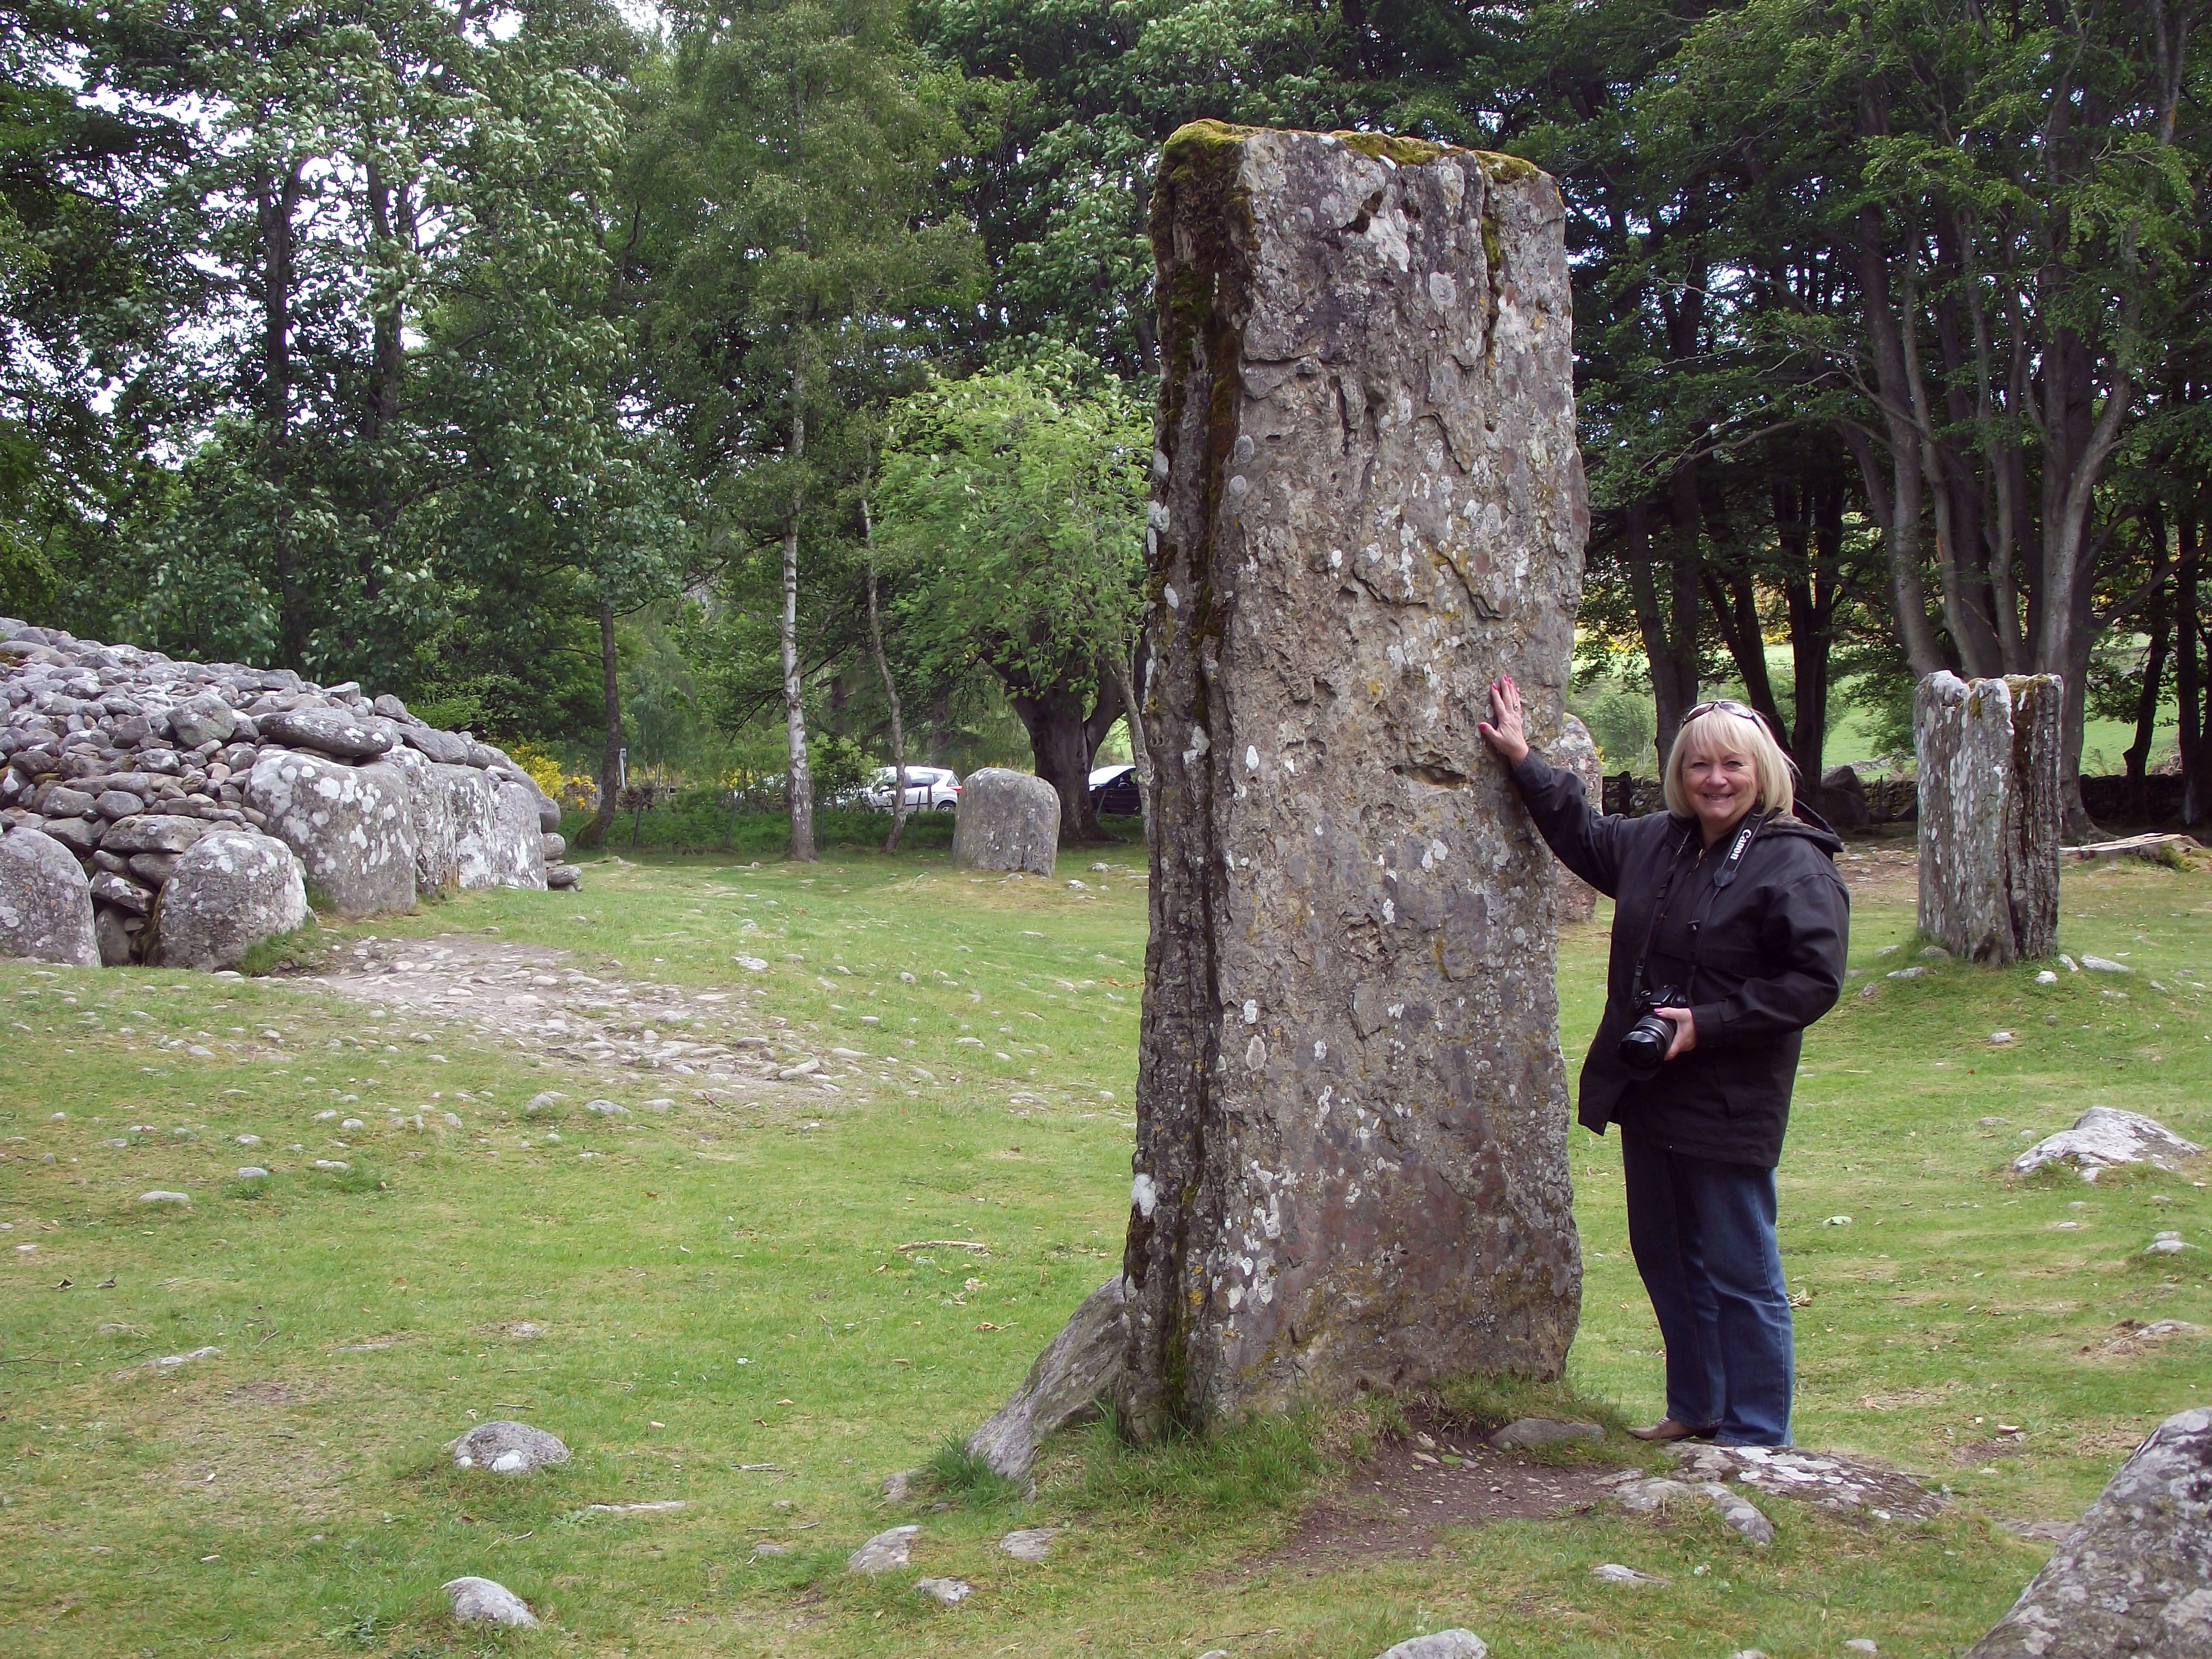 Standing Stone At The Clava Cairns Near Inverness Wishing I Could Hear Them And Pass Through Time 200 Years Cairngorms Inverness Standing Stone